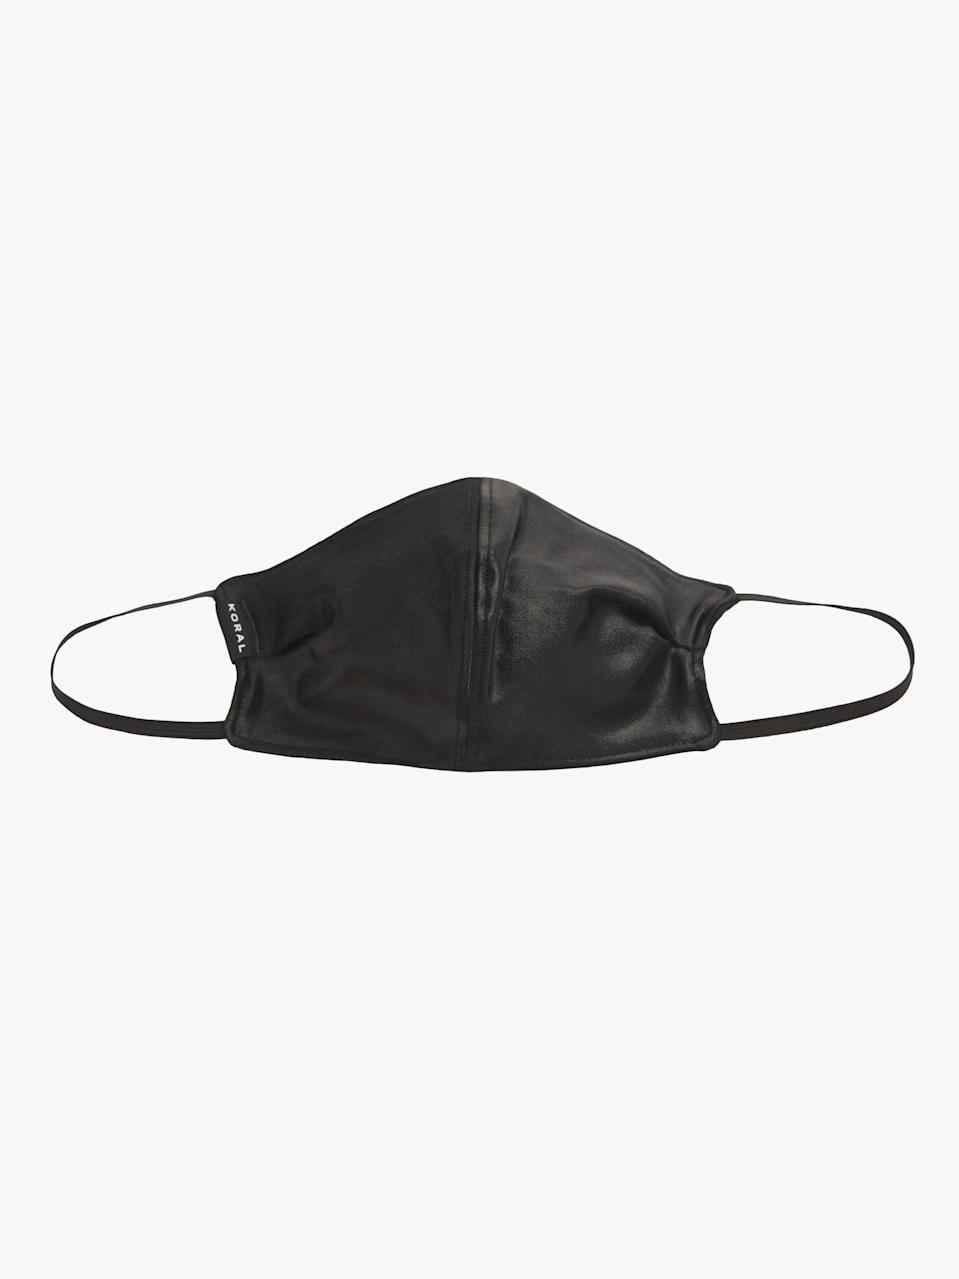 <p>The fast-drying <span>Koral Infinity Face Mask</span> ($20) is made with antimicrobial performance fabrics, and it gets bonus points for its tight-knit UV protection, so you can feel confident wearing the mask inside and out.</p>